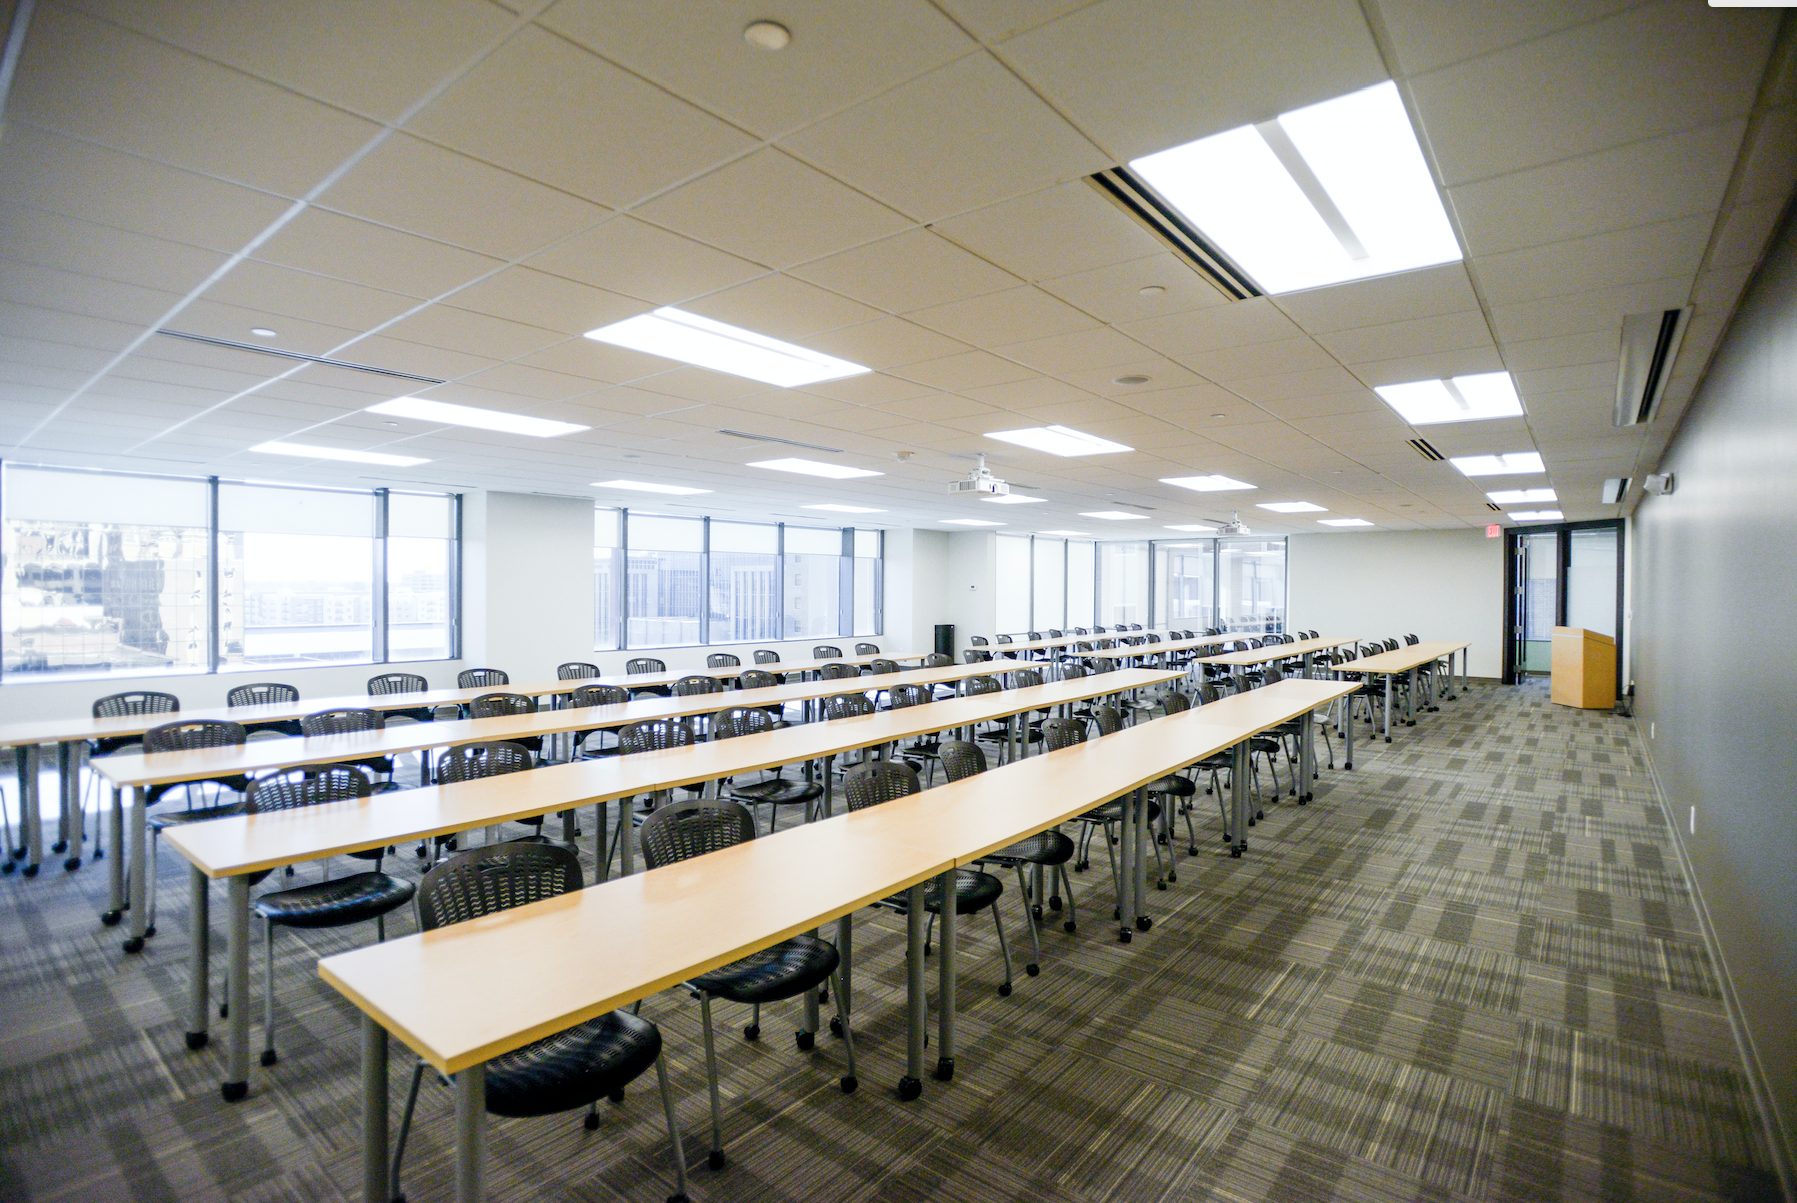 New, expansive conference center with more space where your company can get engaged